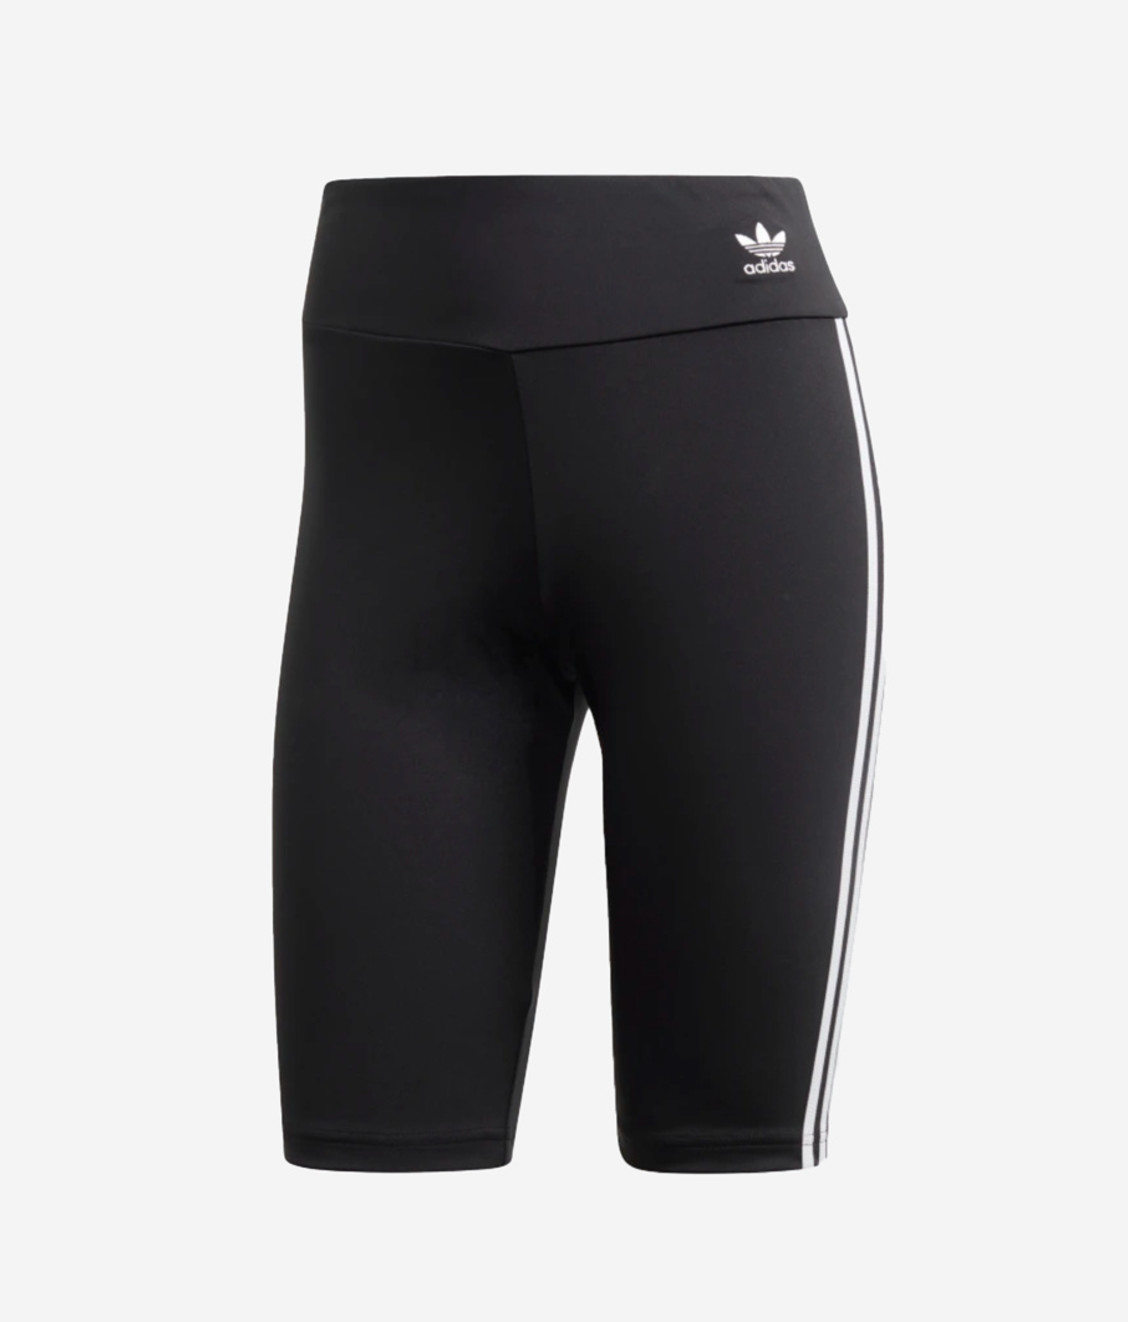 Adidas Adidas Short Tights Black